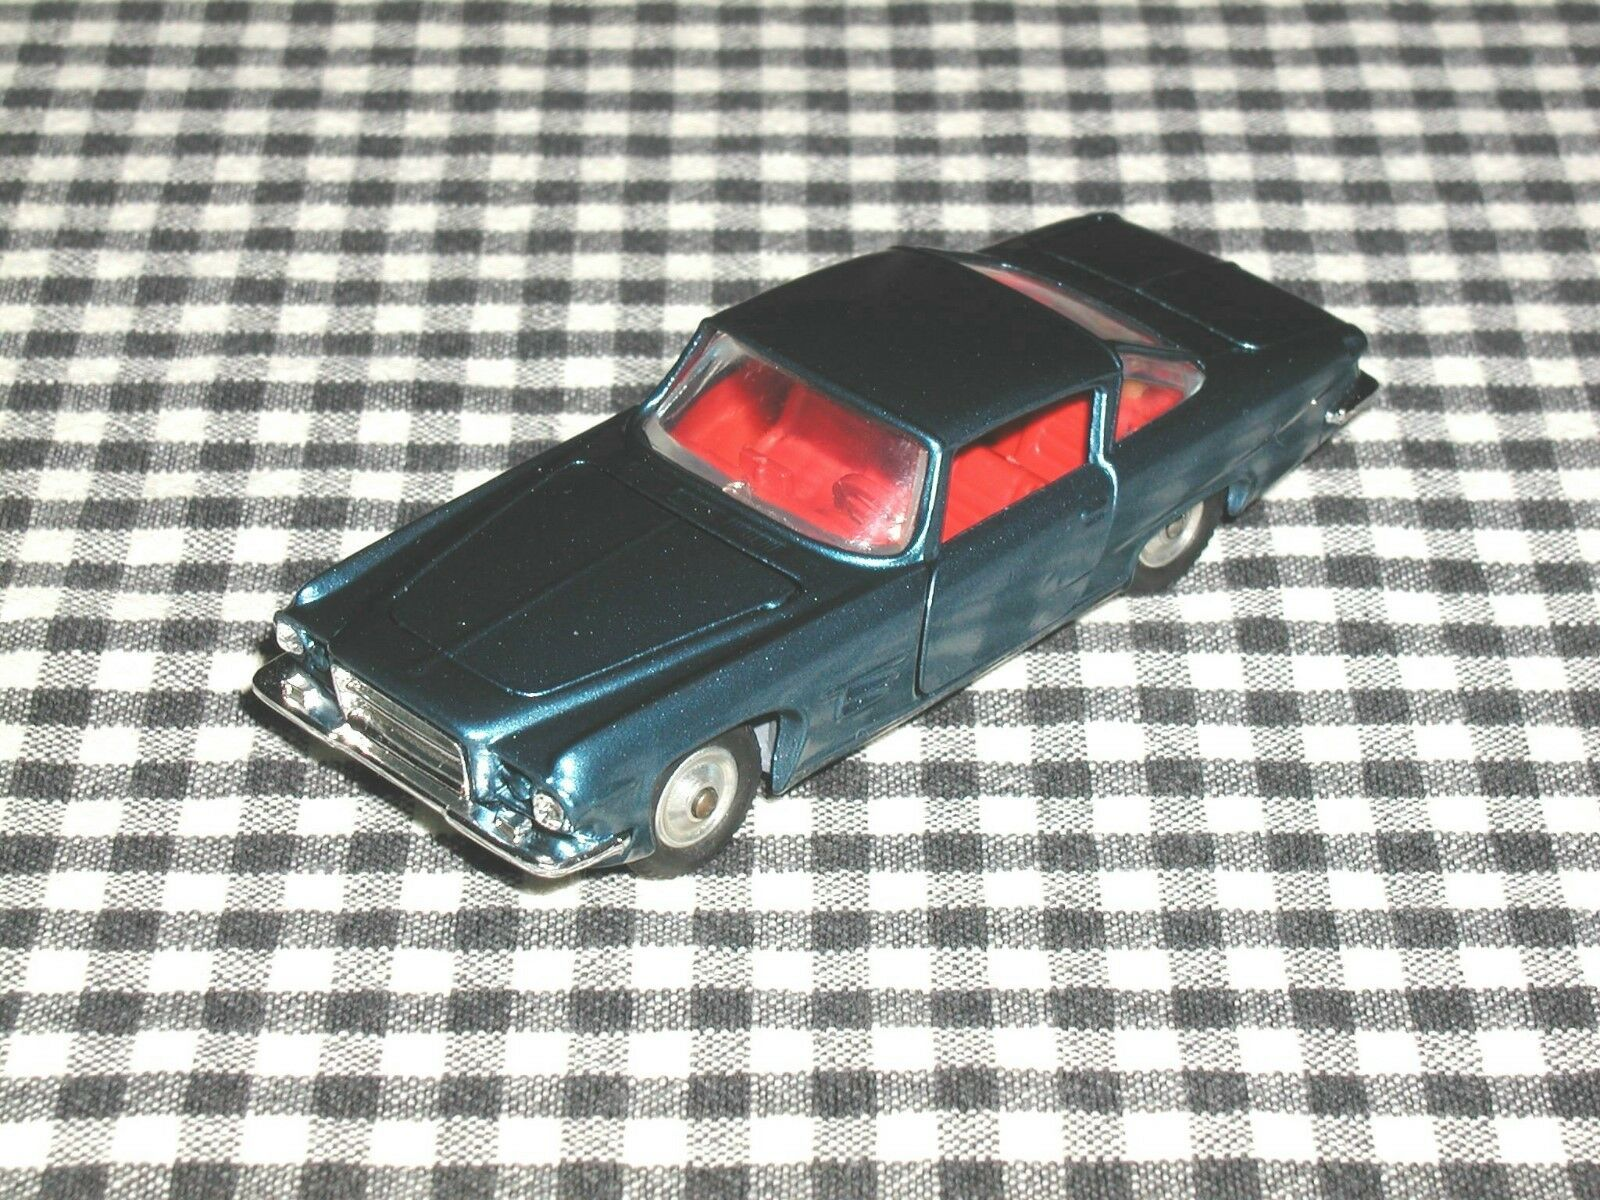 Corgi Toys 241 Chrysler Ghia L6.4 V8 bluee Metallic Restored